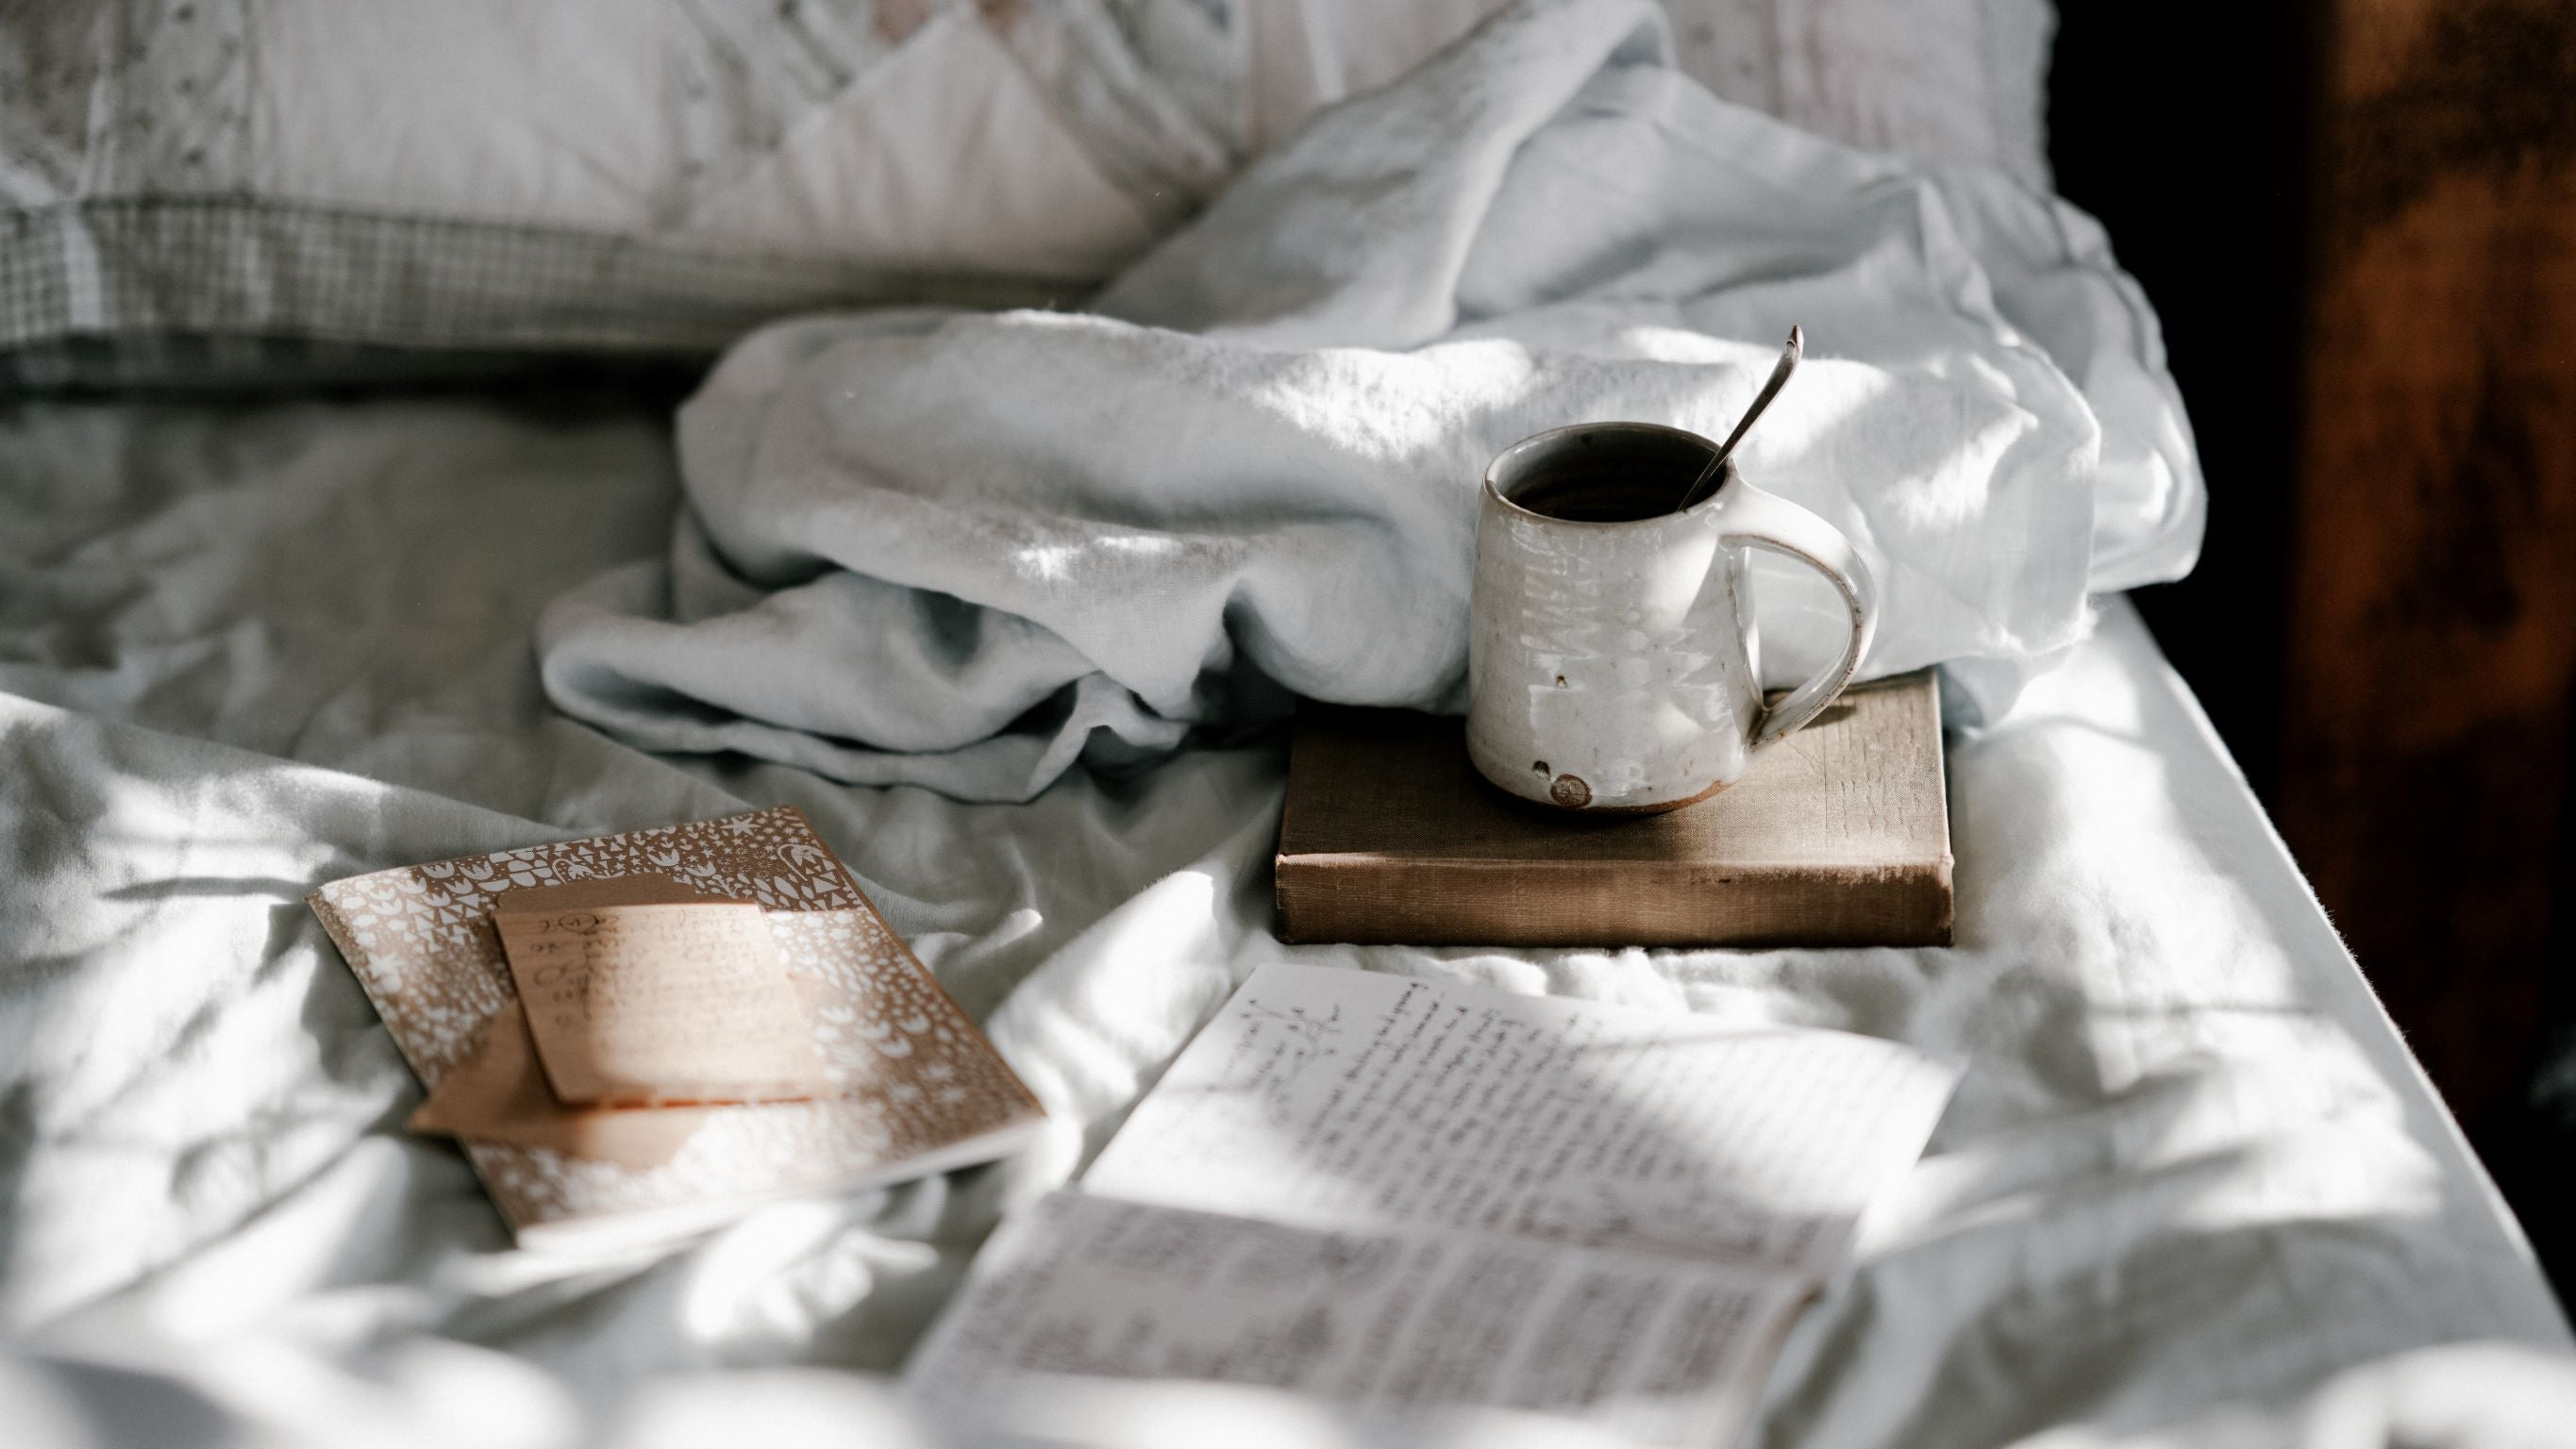 mug on top of bed with journal and books